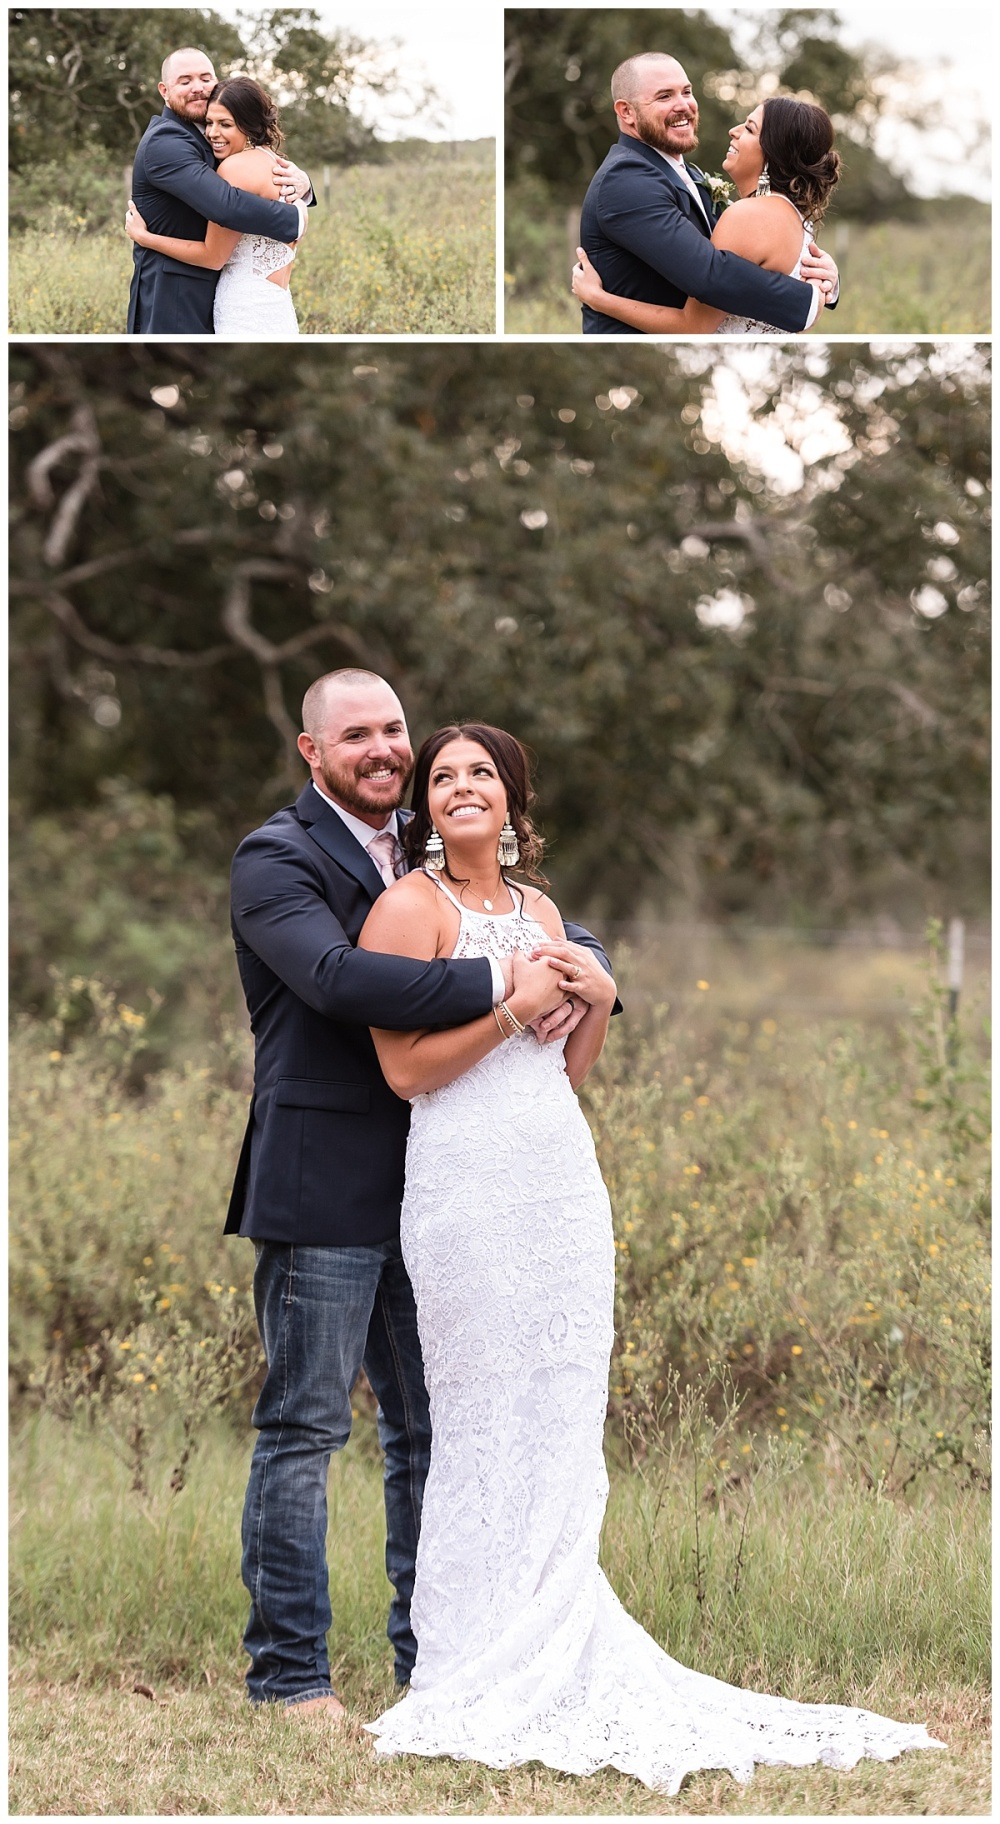 South-Texas-Wedding-Photographer-Rose-Gold-and-Navy-Theme-LaVernia-Bride-Groom-Carly-Barton-Photography_0075